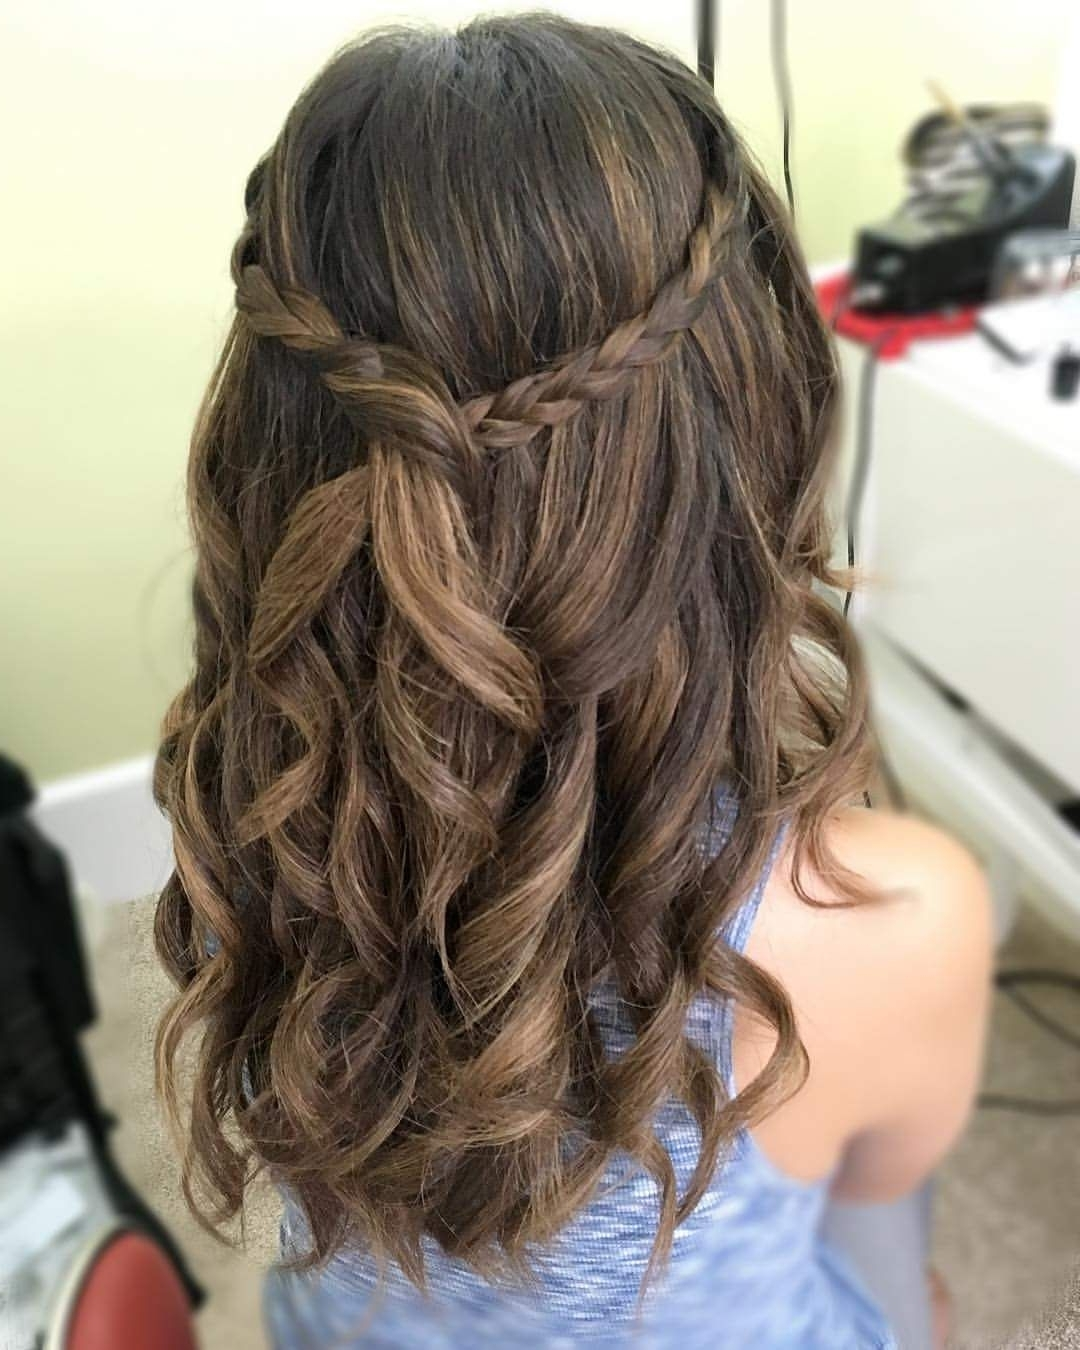 Awesome Graduation Party Hairstyle | Graduation Hairstyles Hairstyles For Medium Length Hair For Graduation